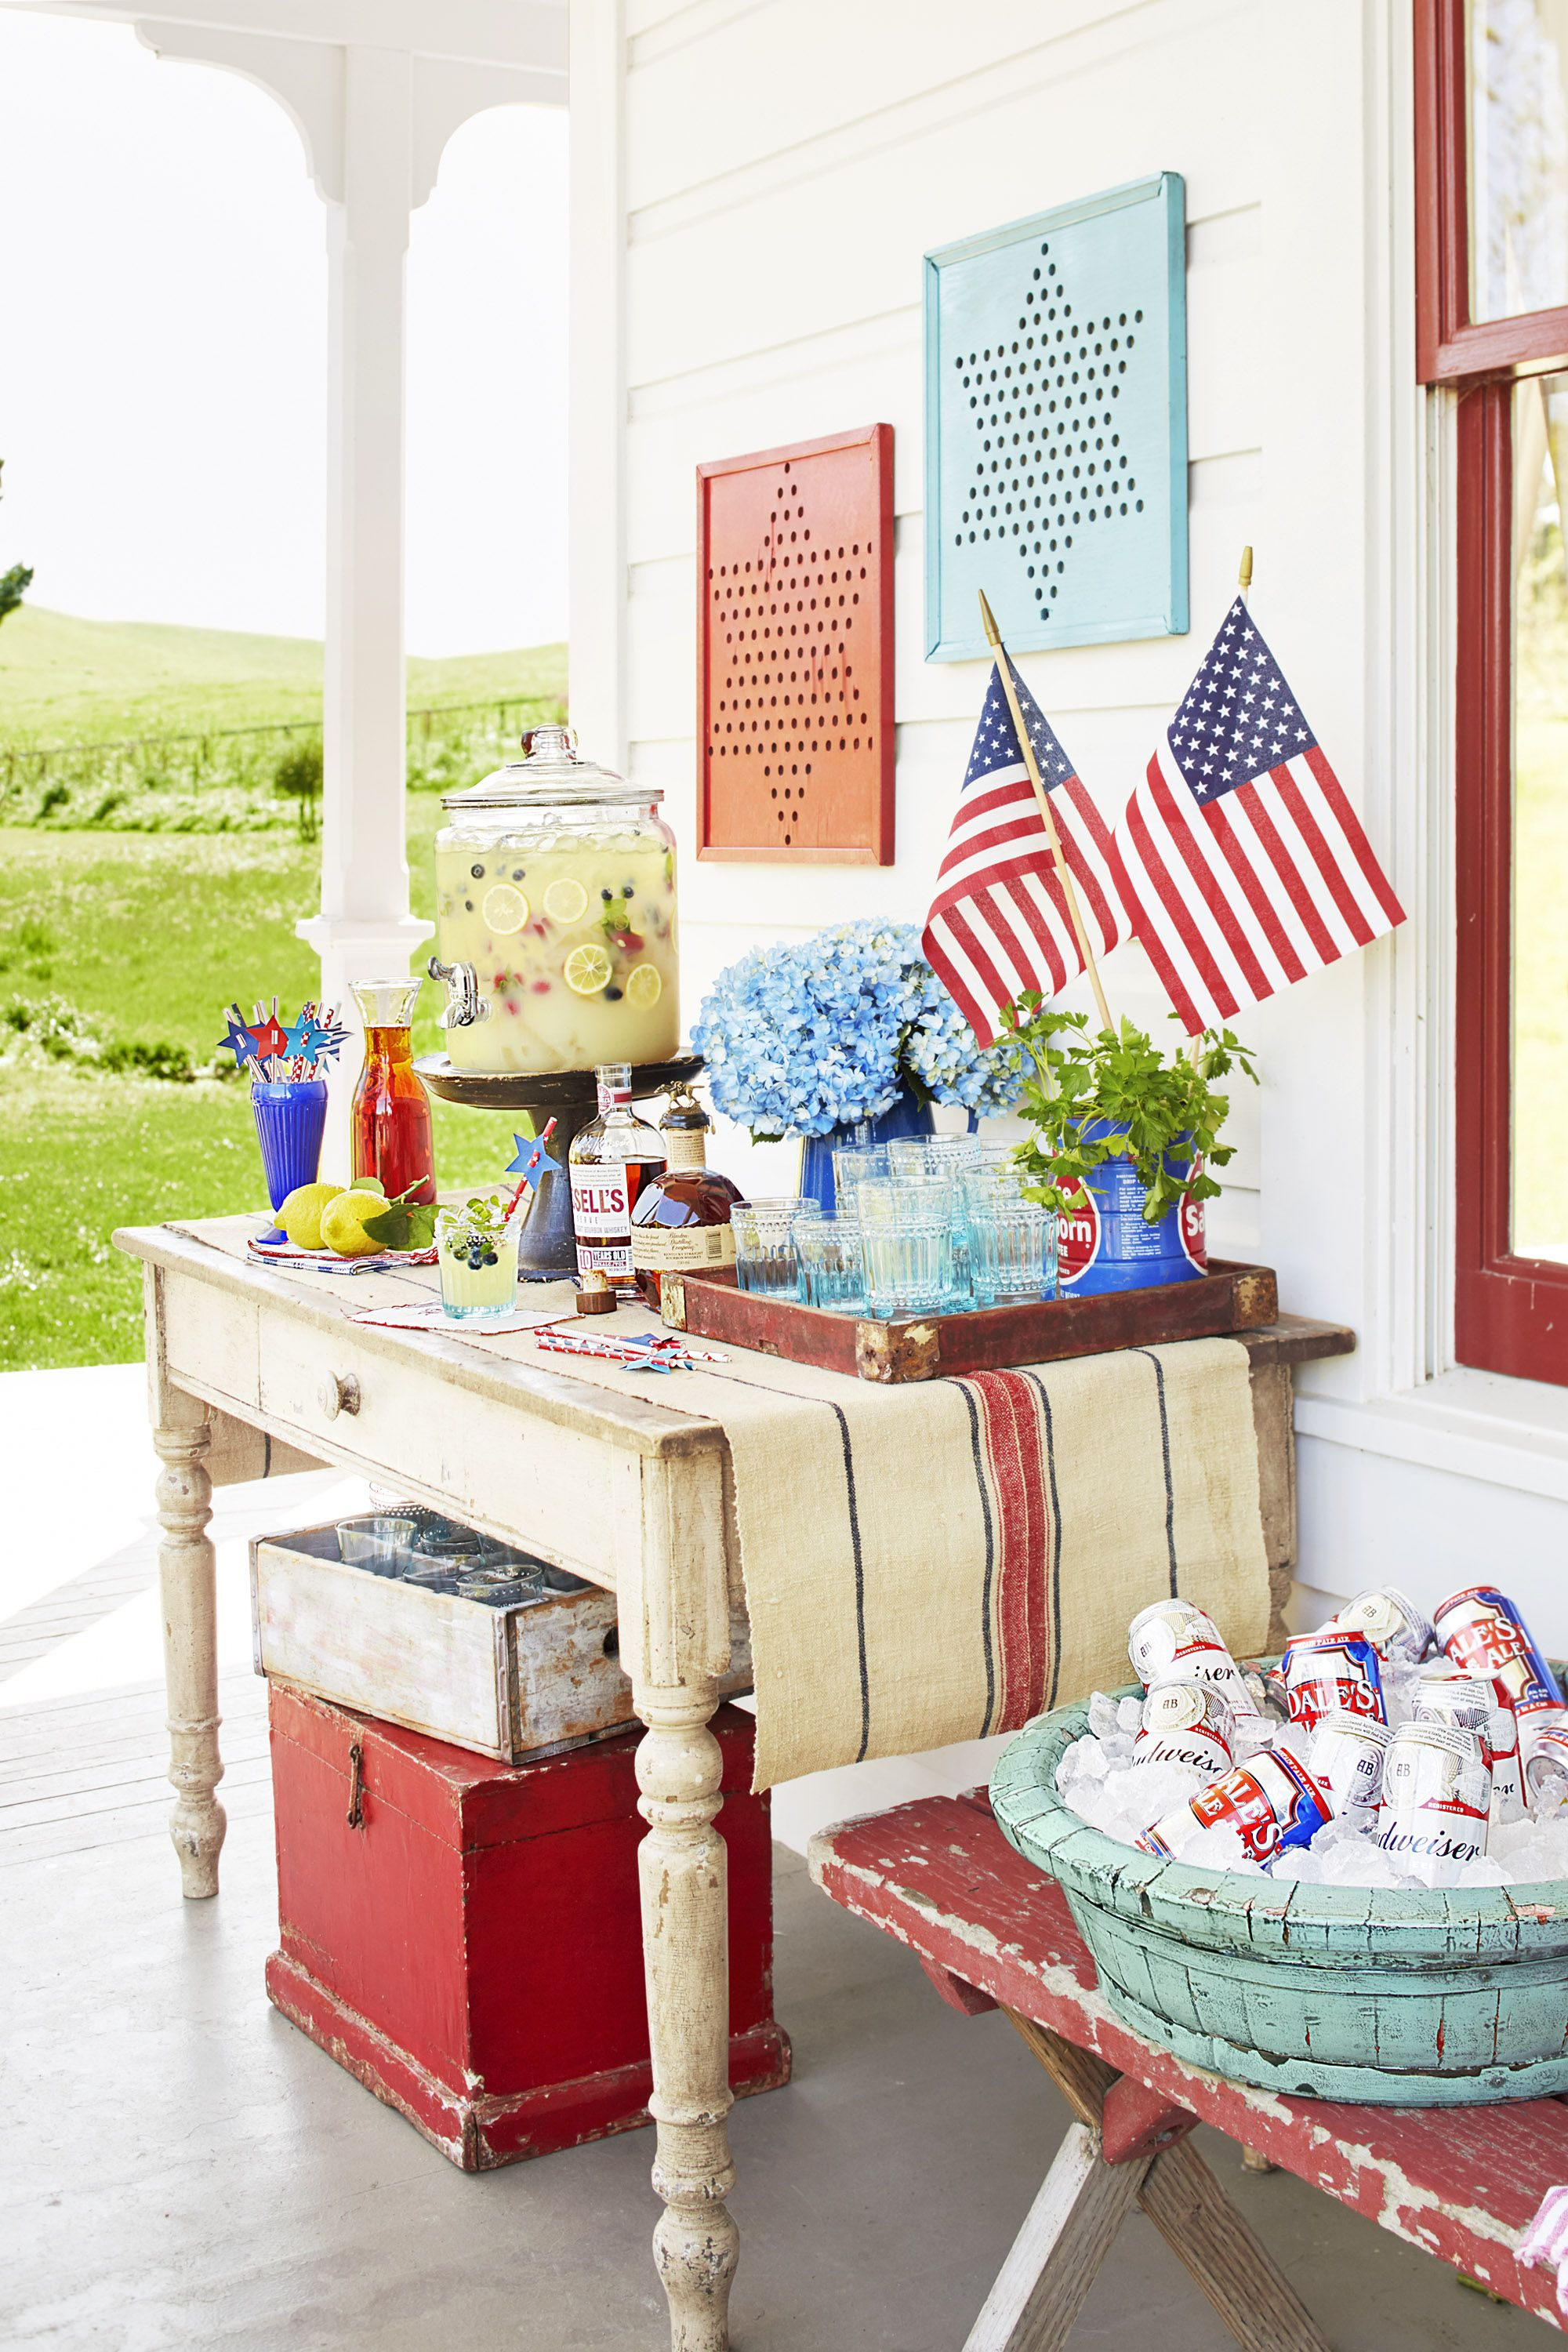 12 Inexpensive 12th of July Party Decorations Under $12 - Cheap